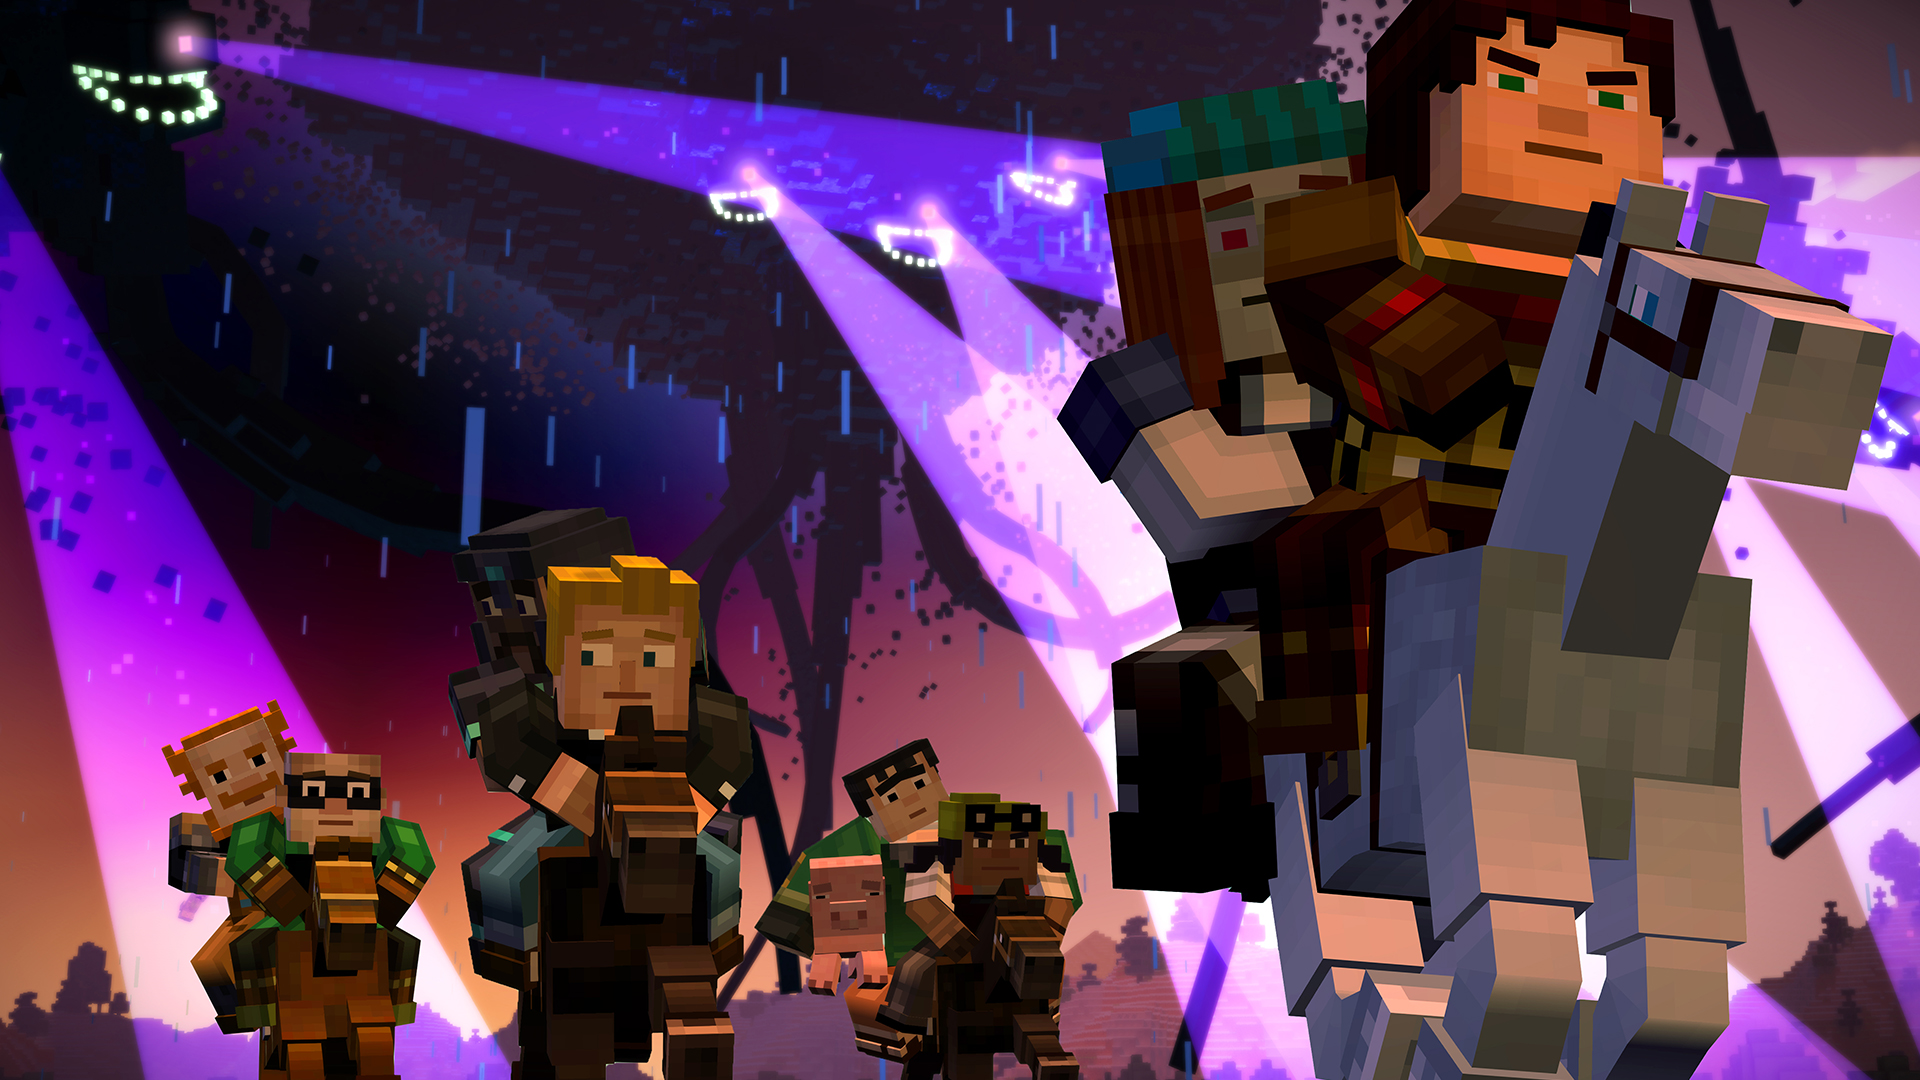 'Minecraft: Story Mode' is now available on Android and iOS